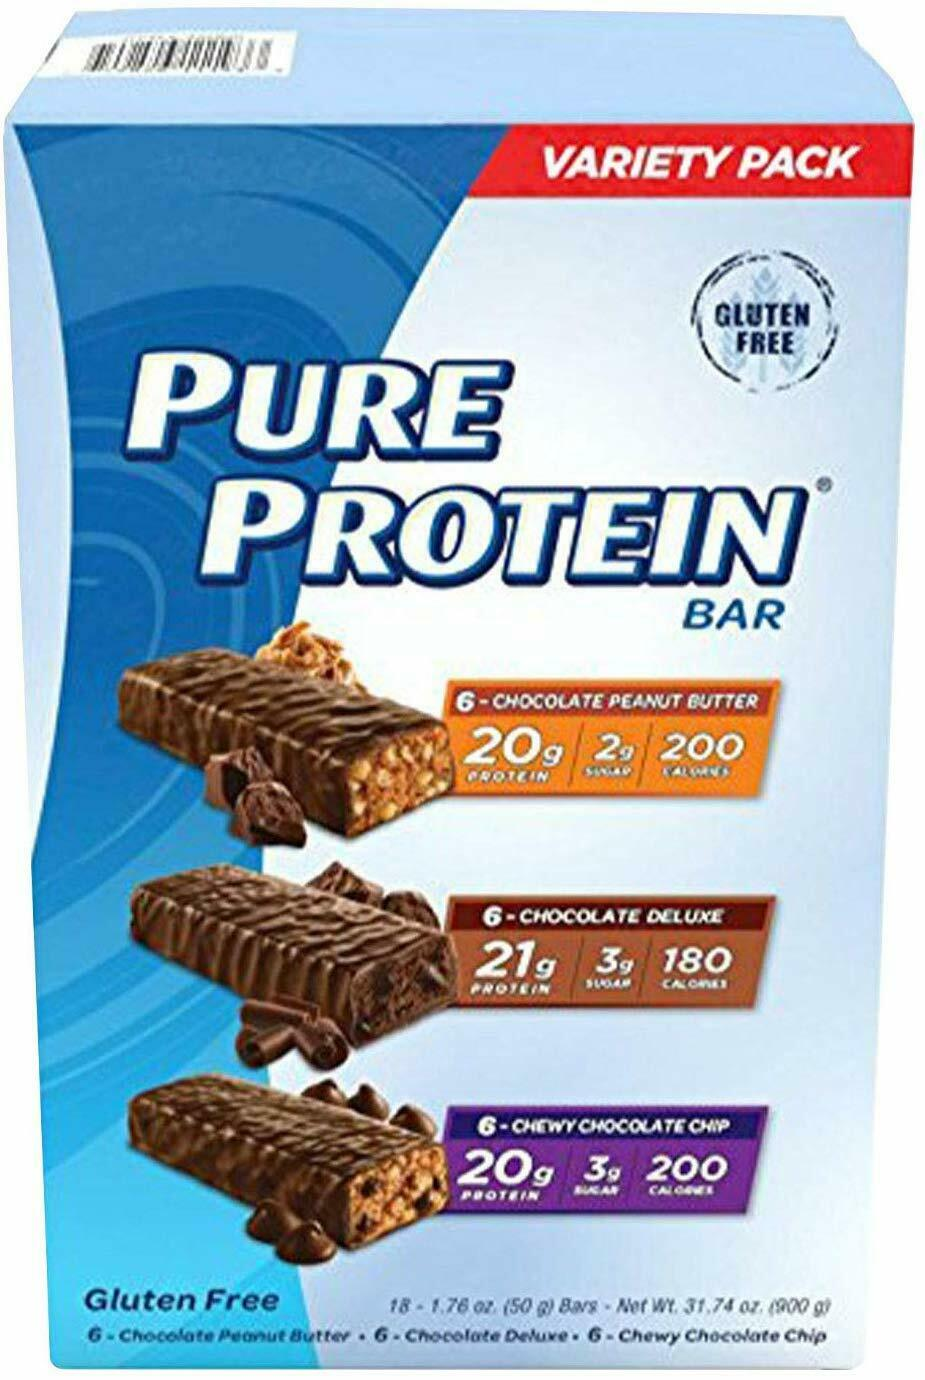 Pure Protein Bars, High Protein, Nutritious Snacks to Support, 1.76oz,18 Pack